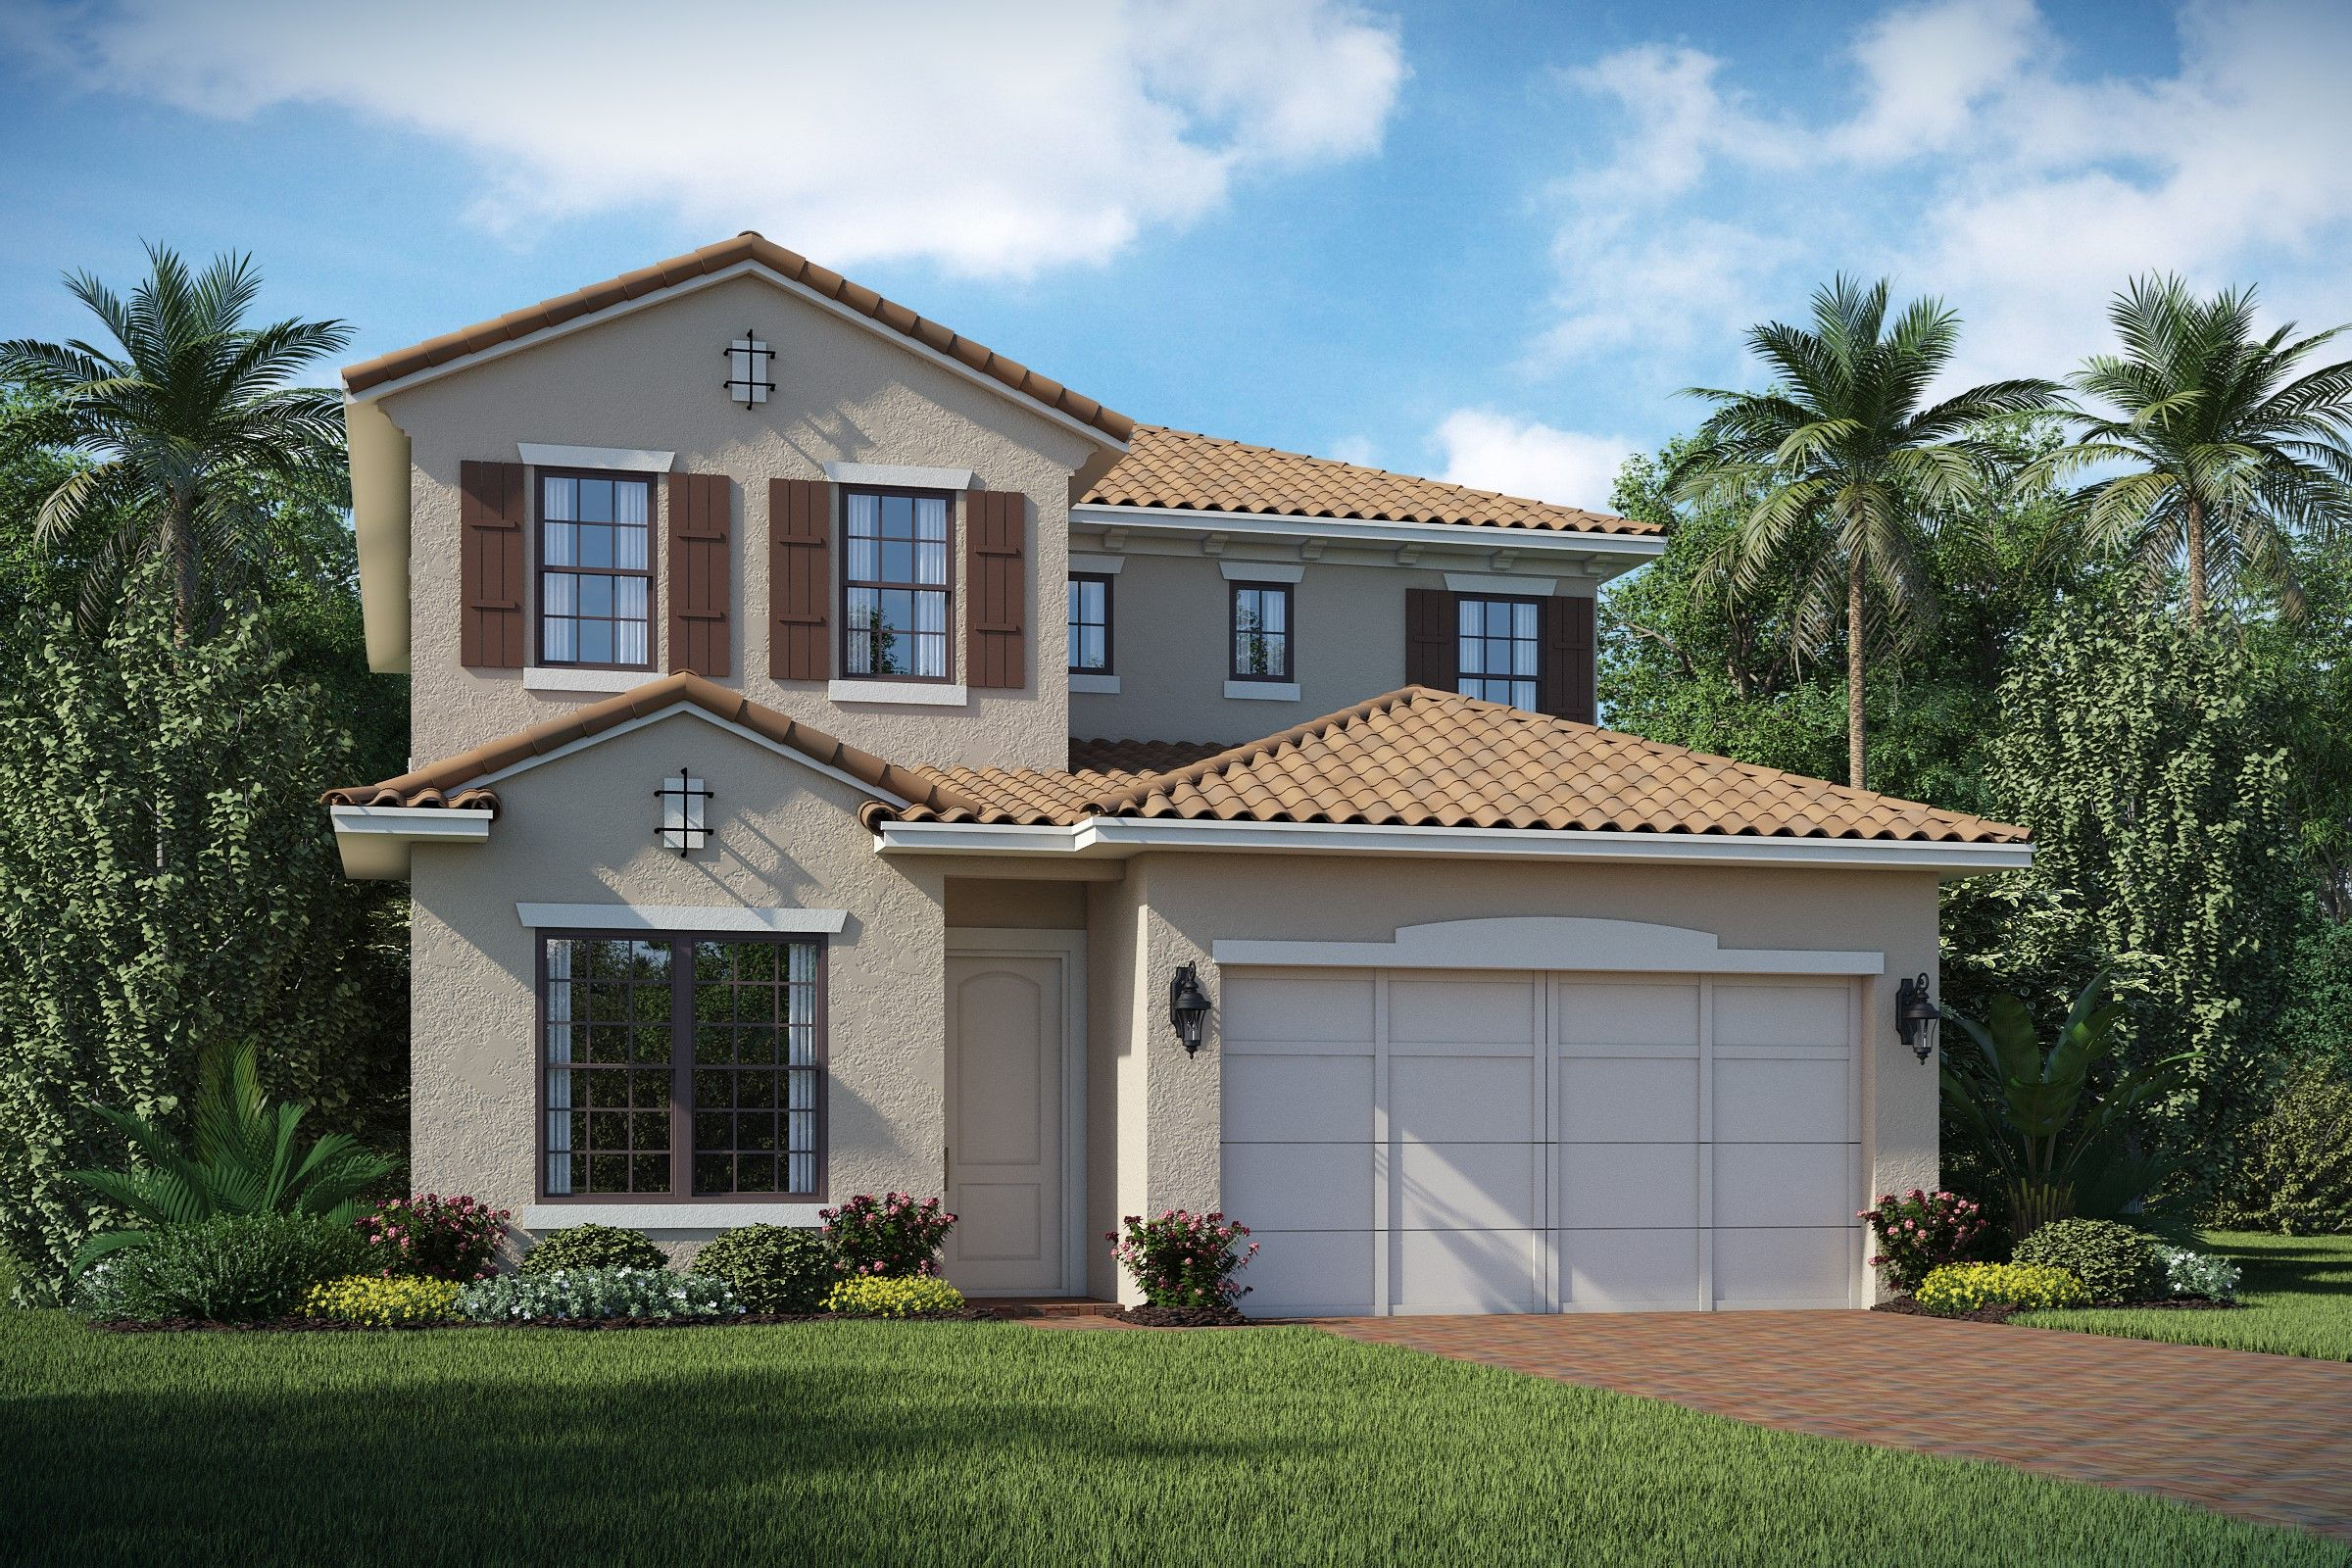 Single Family for Active at Coral Lago - Edinburgh University Drive And Nw 39th Street Coral Springs, Florida 33075 United States